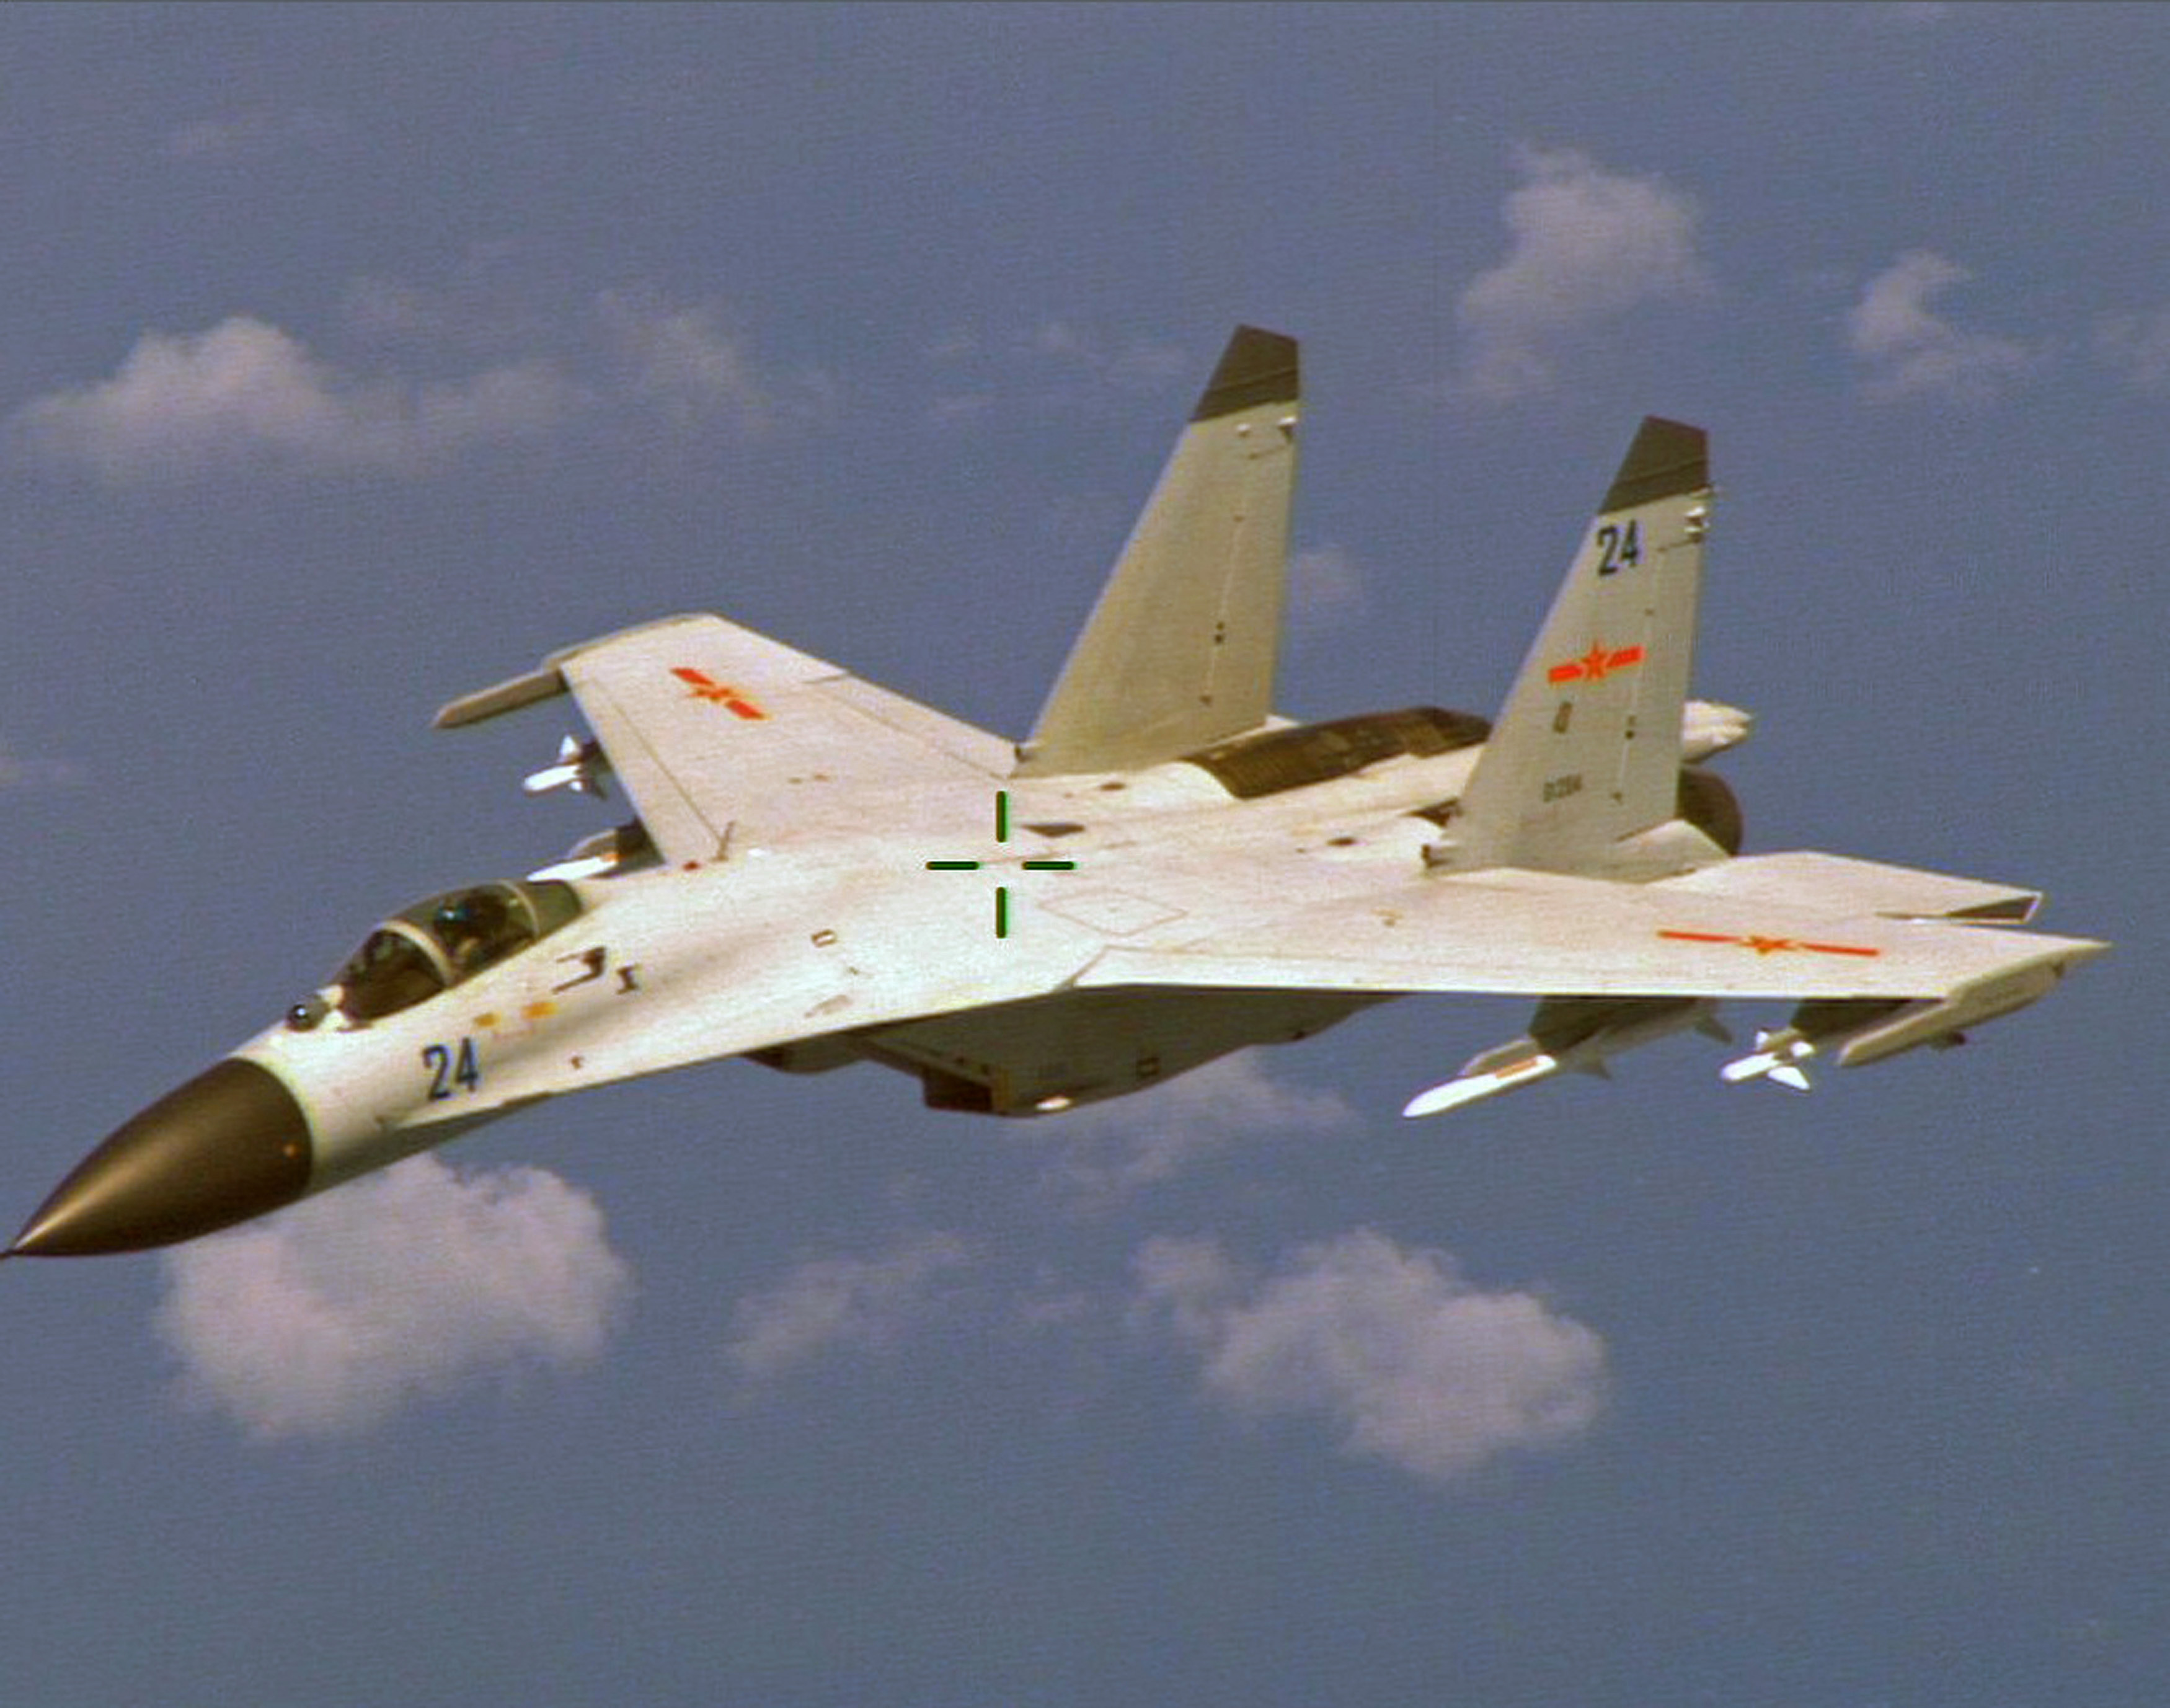 A Chinese J-11 fighter jet is seen flying near a U.S. Navy P-8 Poseidon about 215 km (135 miles) east of China's Hainan Island in this U.S. Department of Defense handout photo taken Aug. 19, 2014.